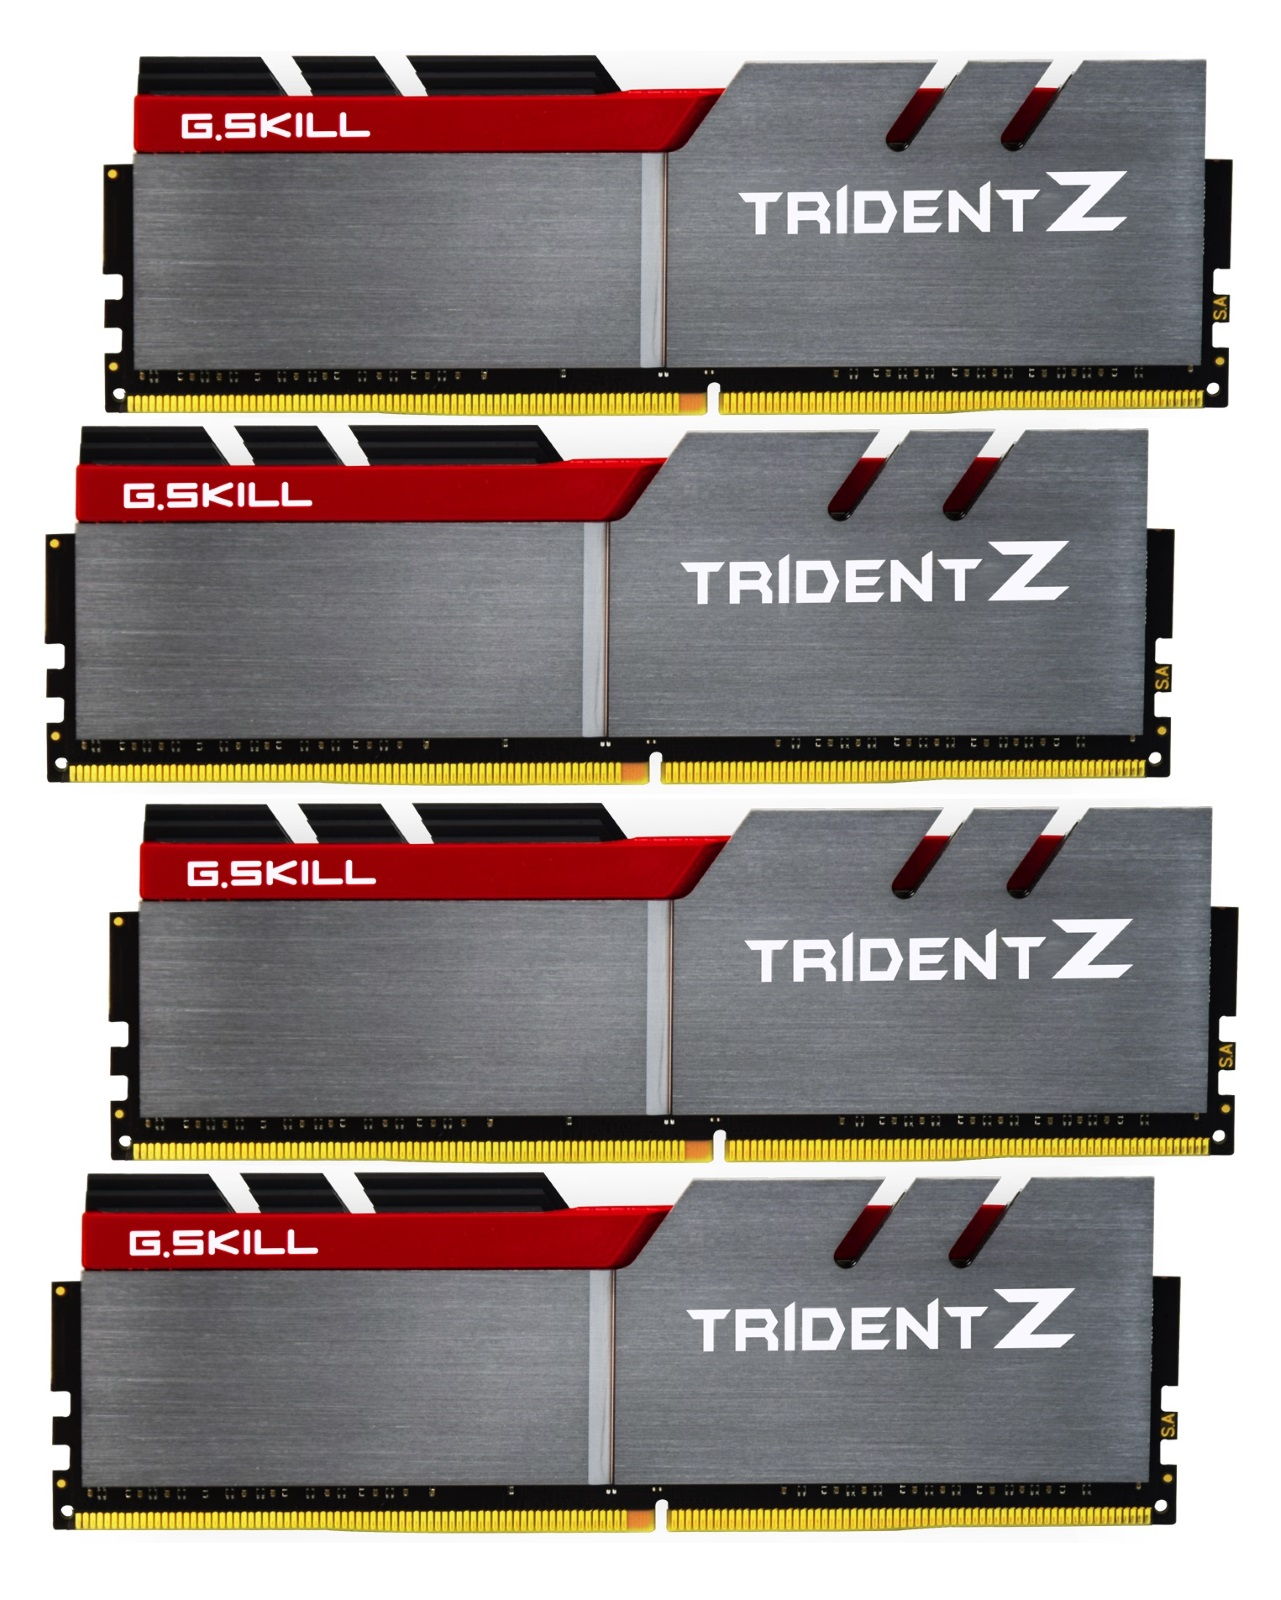 64GB G.Skill DDR4 Trident Z 3200Mhz PC4-25600 CL14 (14-14-14-34) 1.35V Quad Channel Kit (4x16GB)